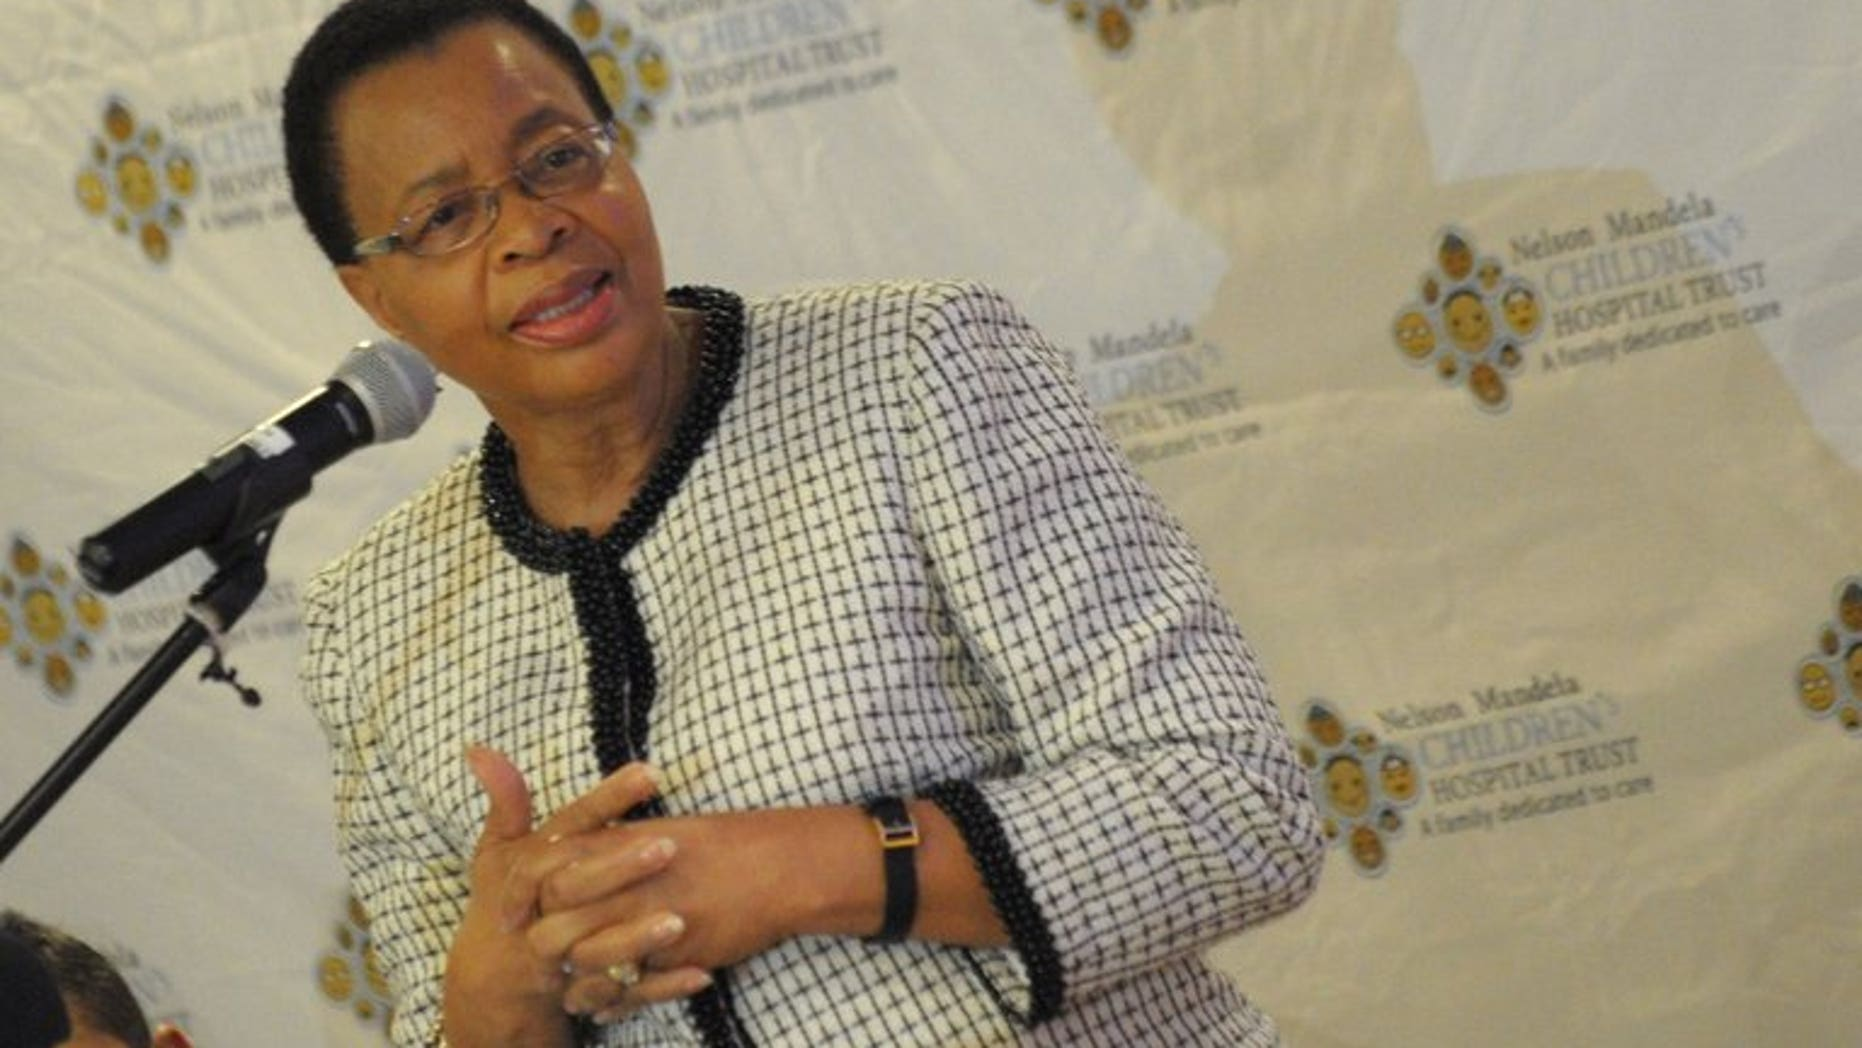 Graca Machel, the wife of ailing former South African president Nelson Mandela, gives a press conference in Johannesburg on July 4, 2013. Machel said Friday she is now less anxious about his condition, five weeks into his hospitalisation.